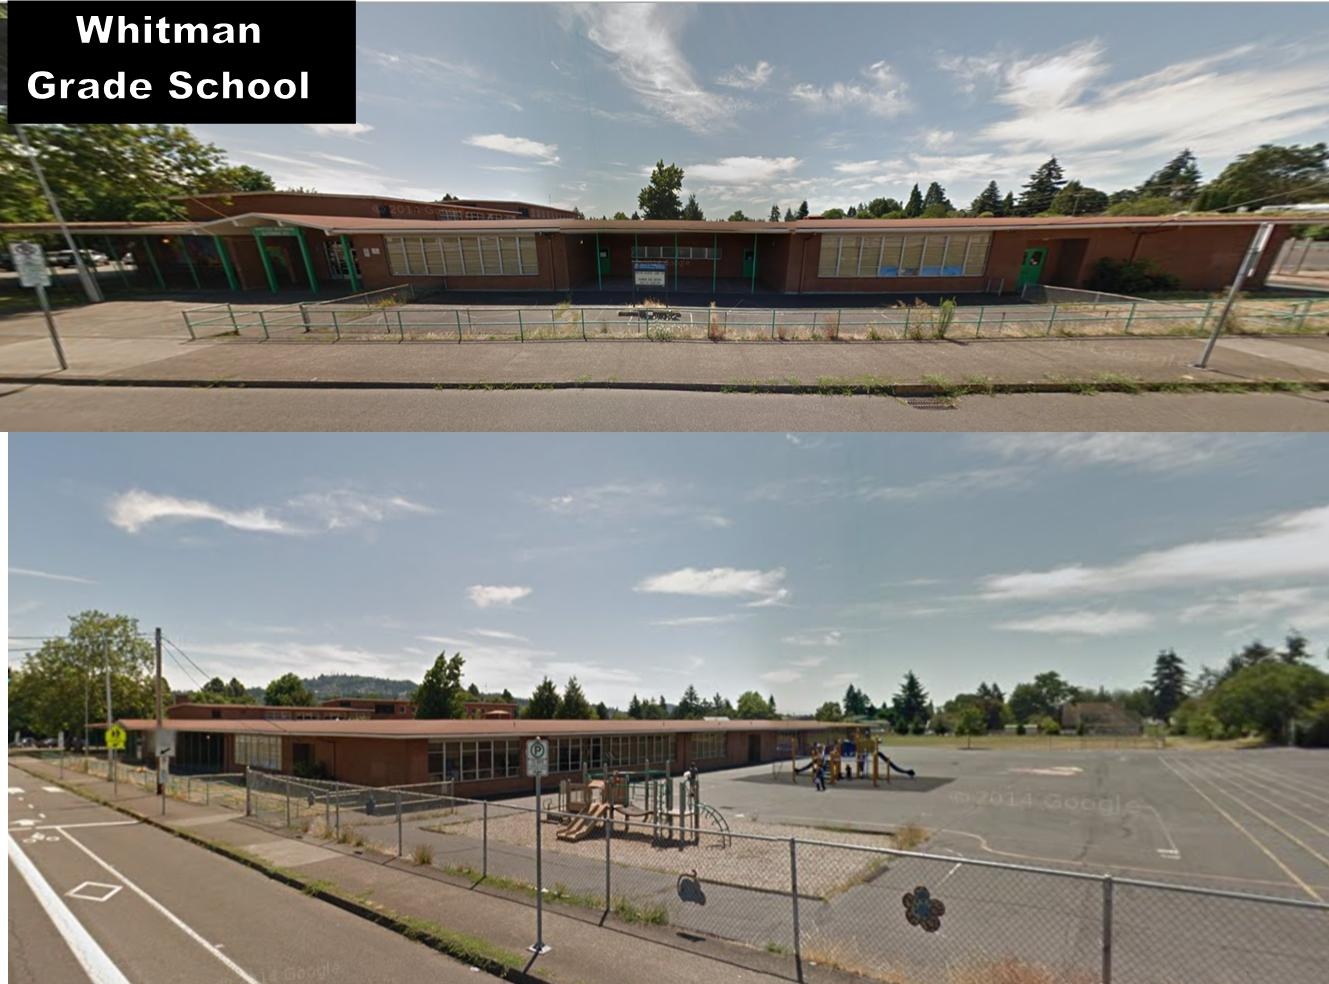 Whitman Grade School